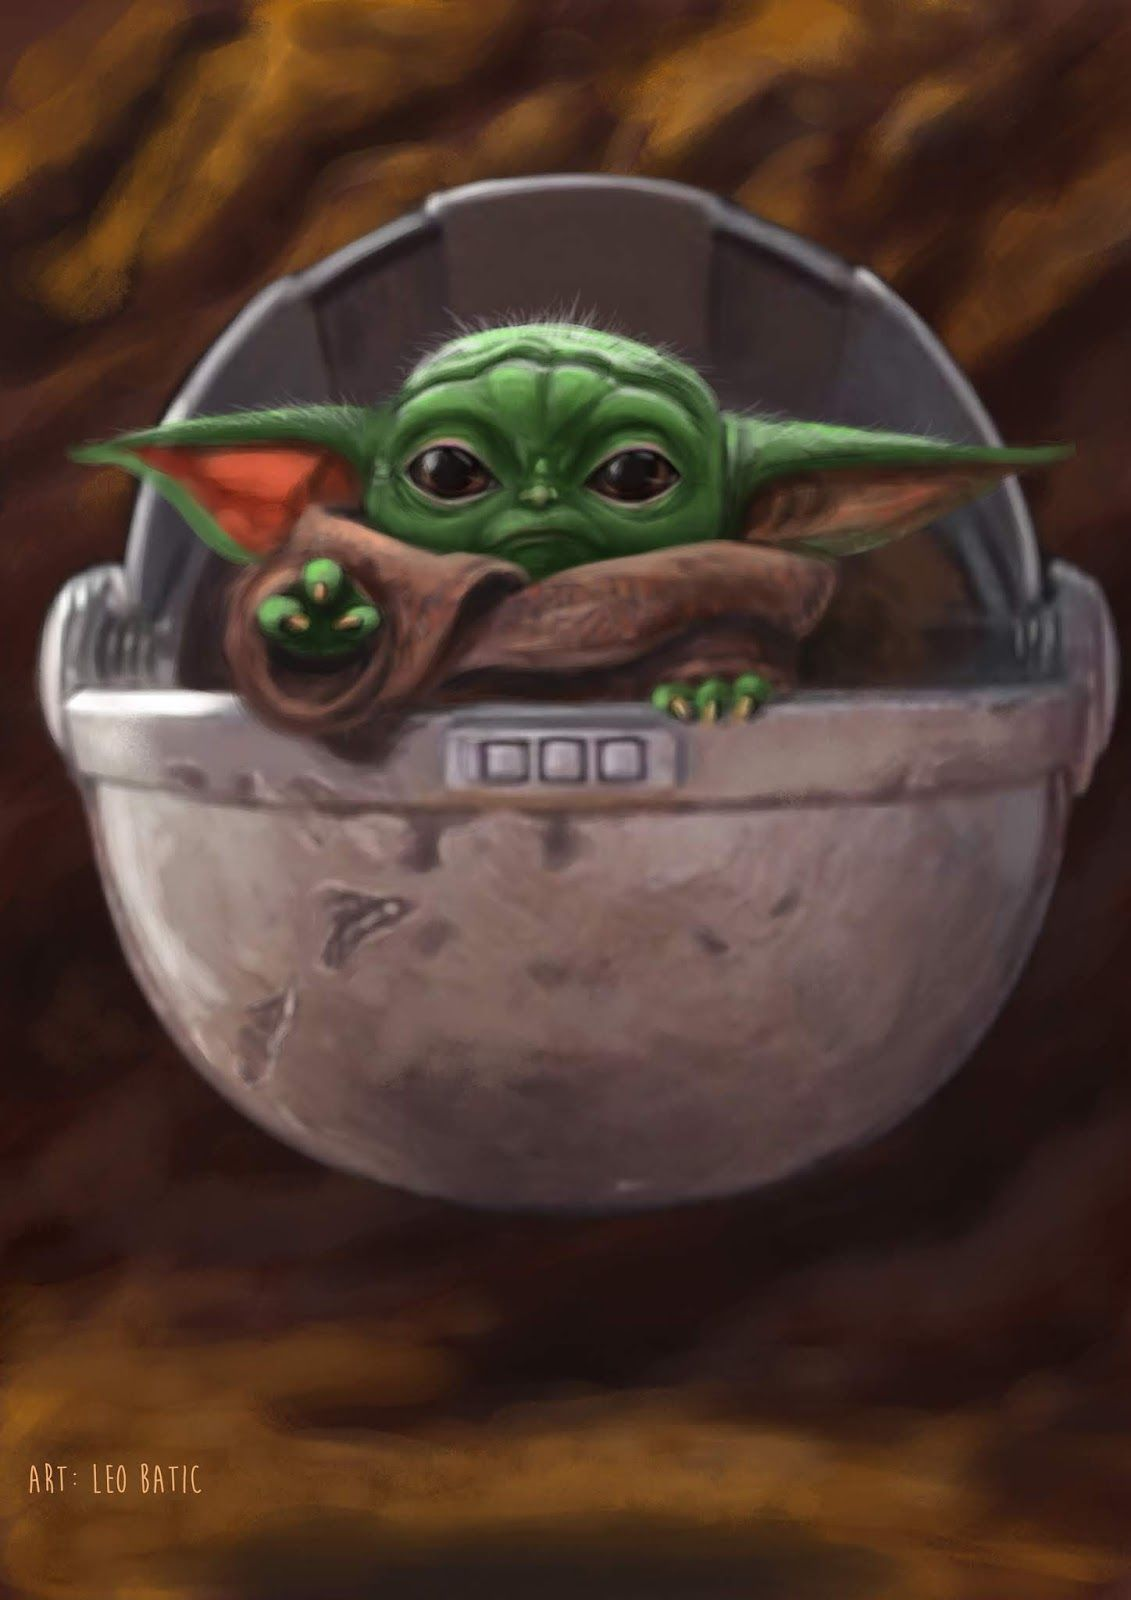 Baby Yoda Iphone Wallpapers Top Free Baby Yoda Iphone Backgrounds Wallpaperaccess